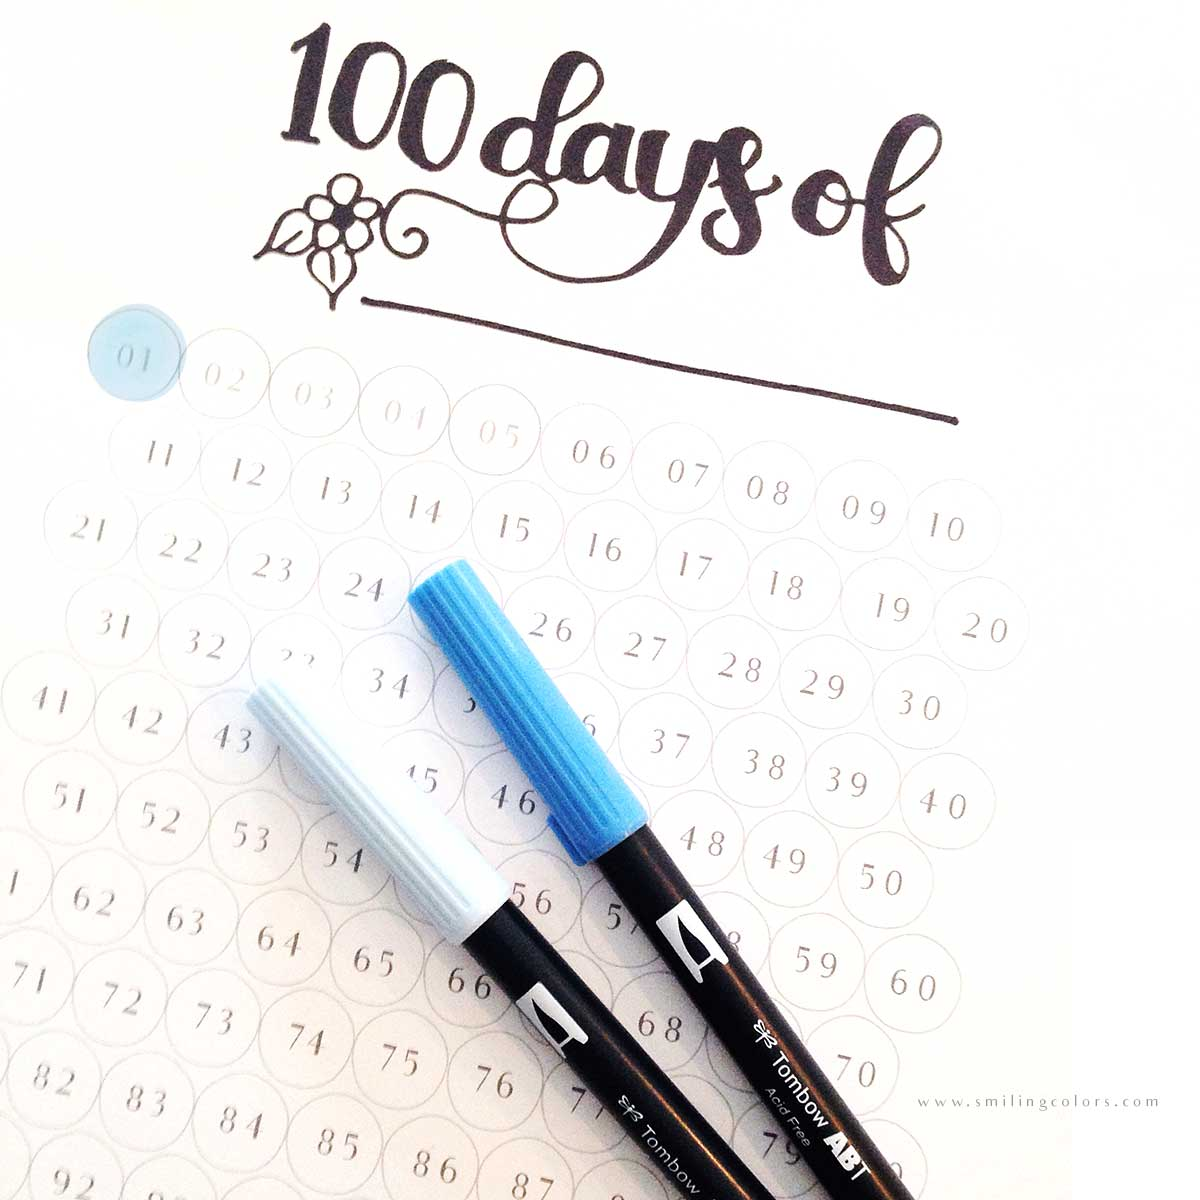 FREE 100 day goal tracking printable, just download and color!